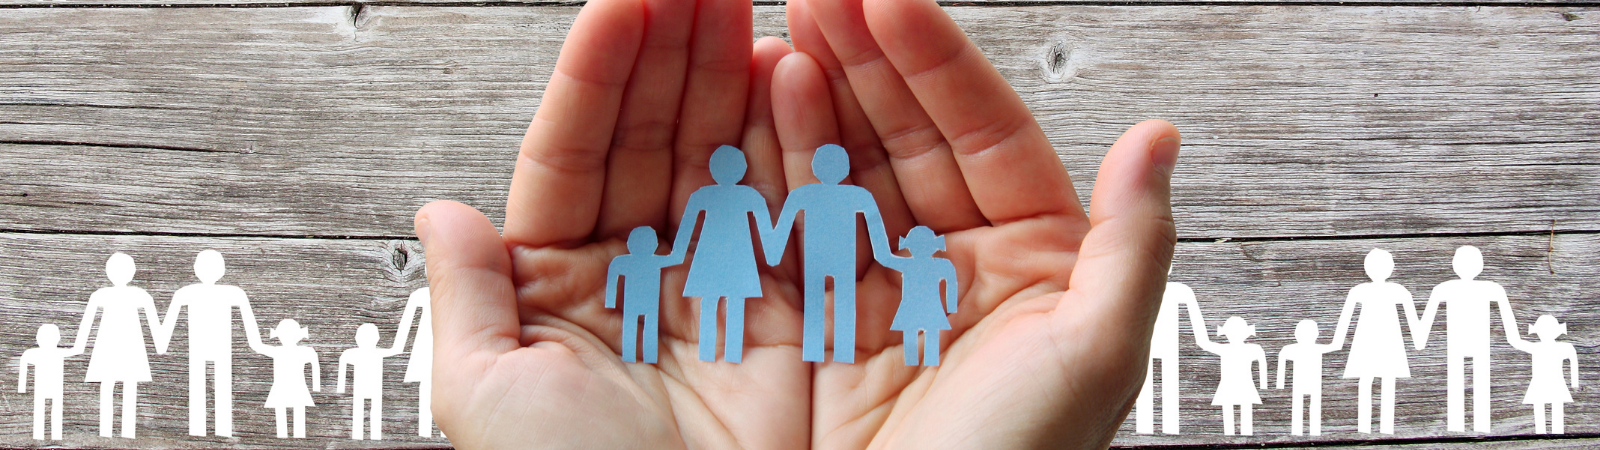 family hands banner image